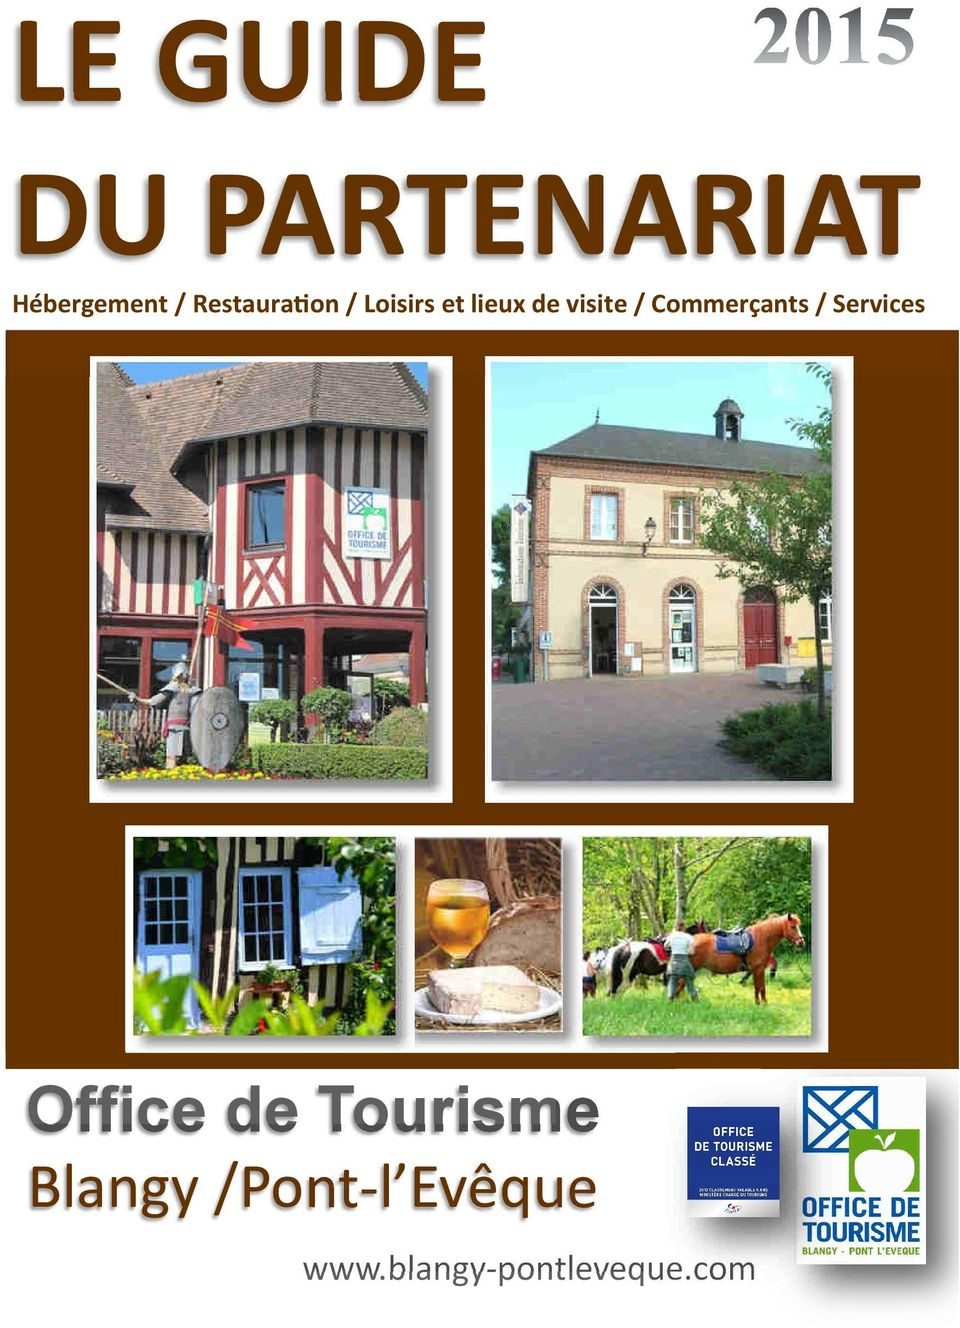 Commerçants / Services Office de Tourisme